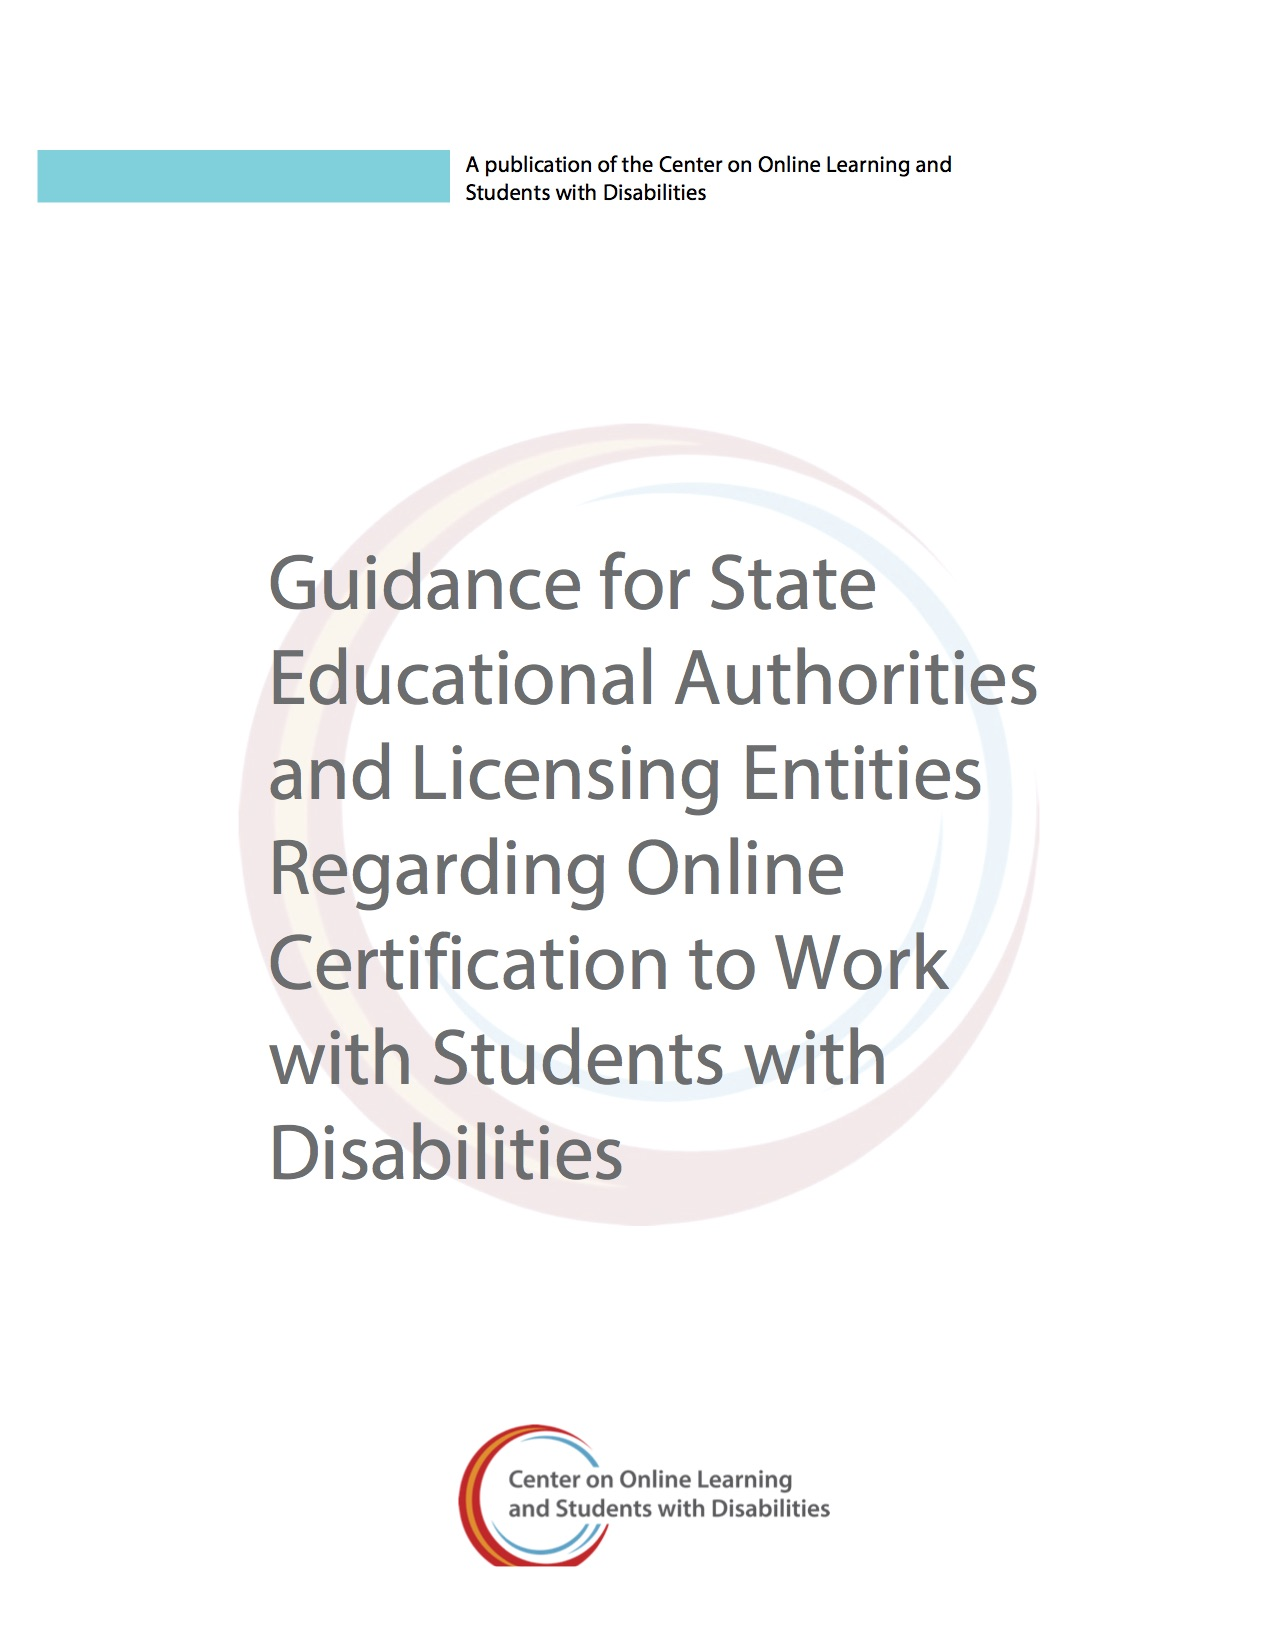 Guidance For State Educational Authorities And Licensing Entities Regarding Online Certification To Work With Students With Disabilities